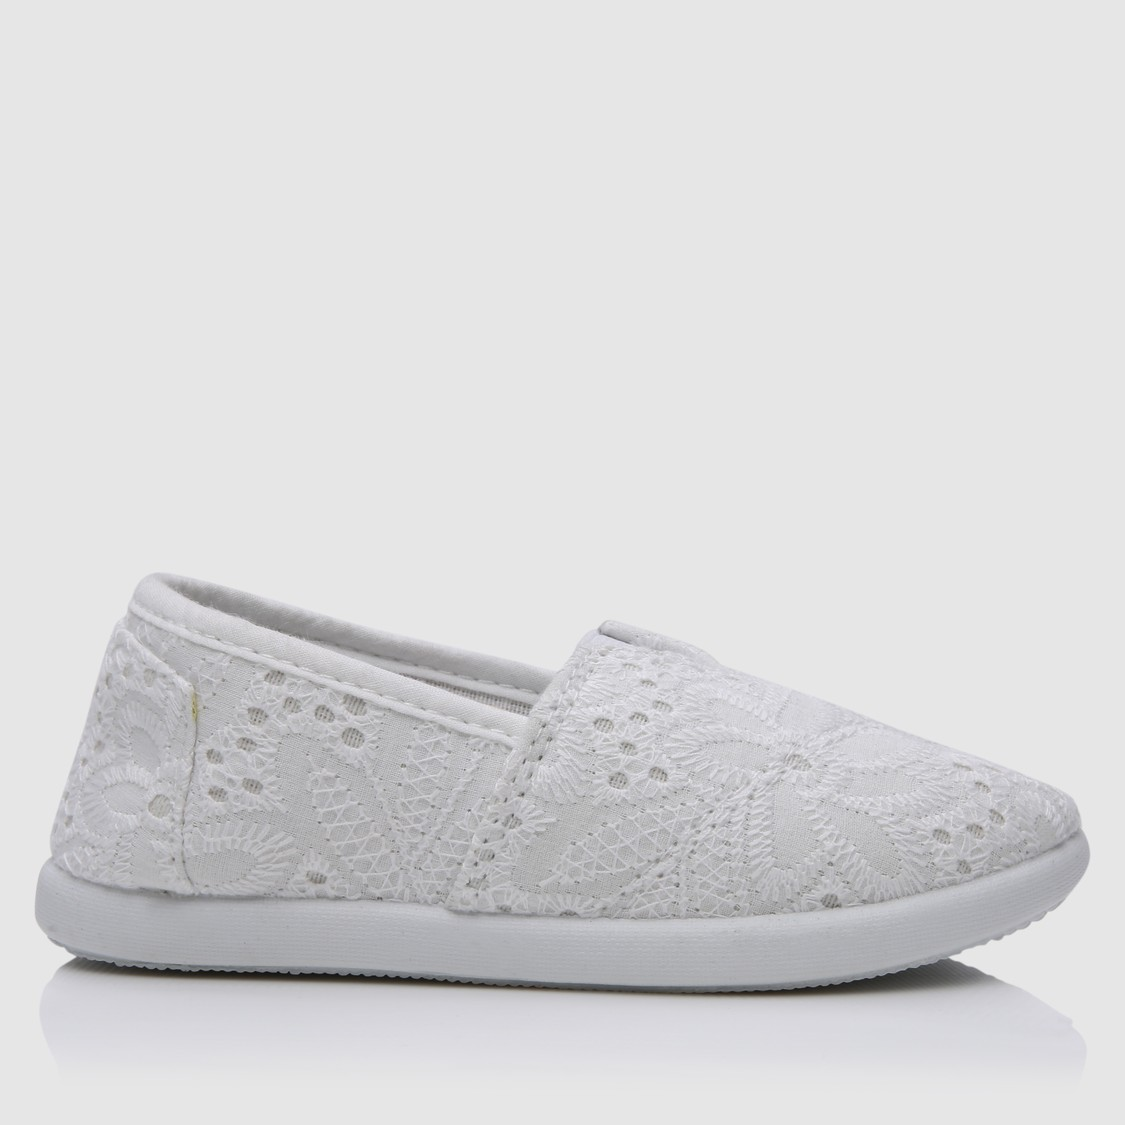 Lace Detail Slip-On Shoes